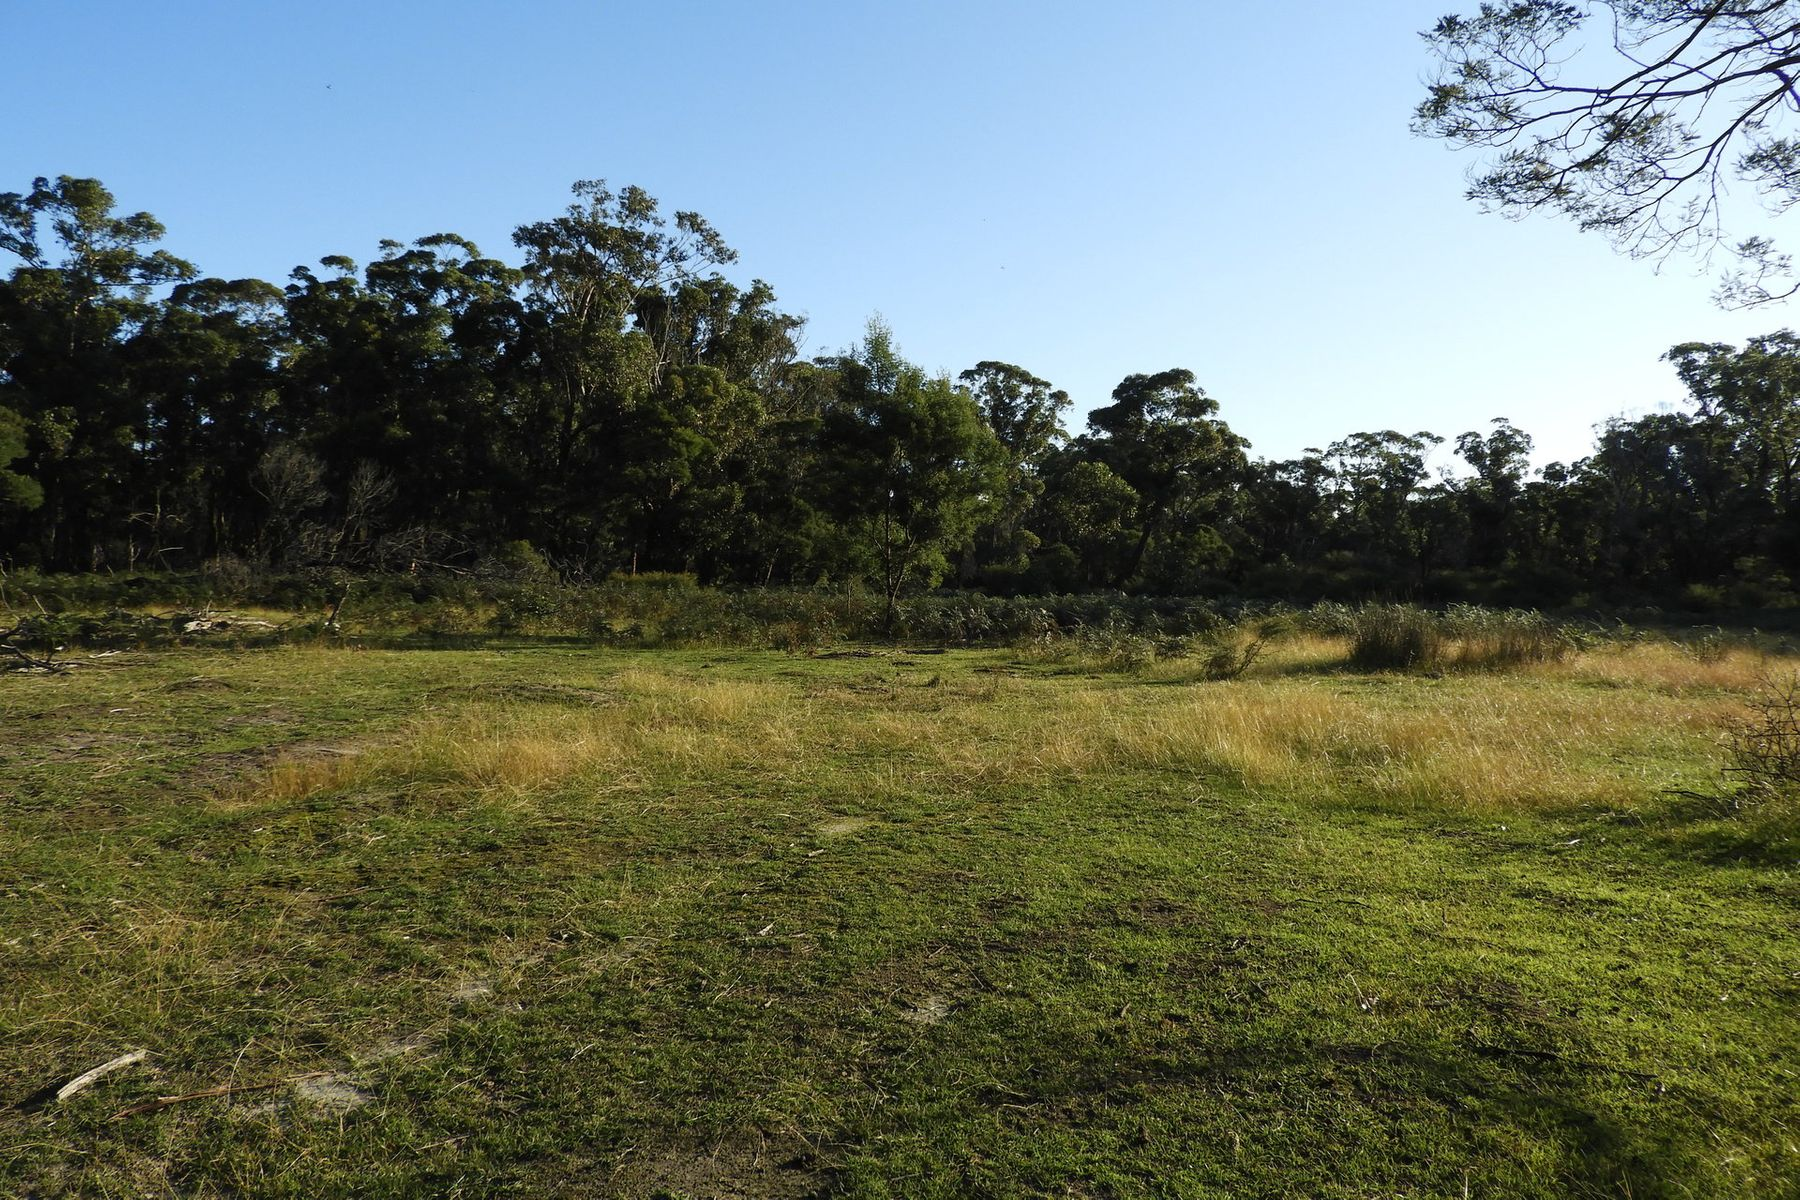 Lot Crown Allo/17, 240 Centre Road, Raymond Island, VIC 3880